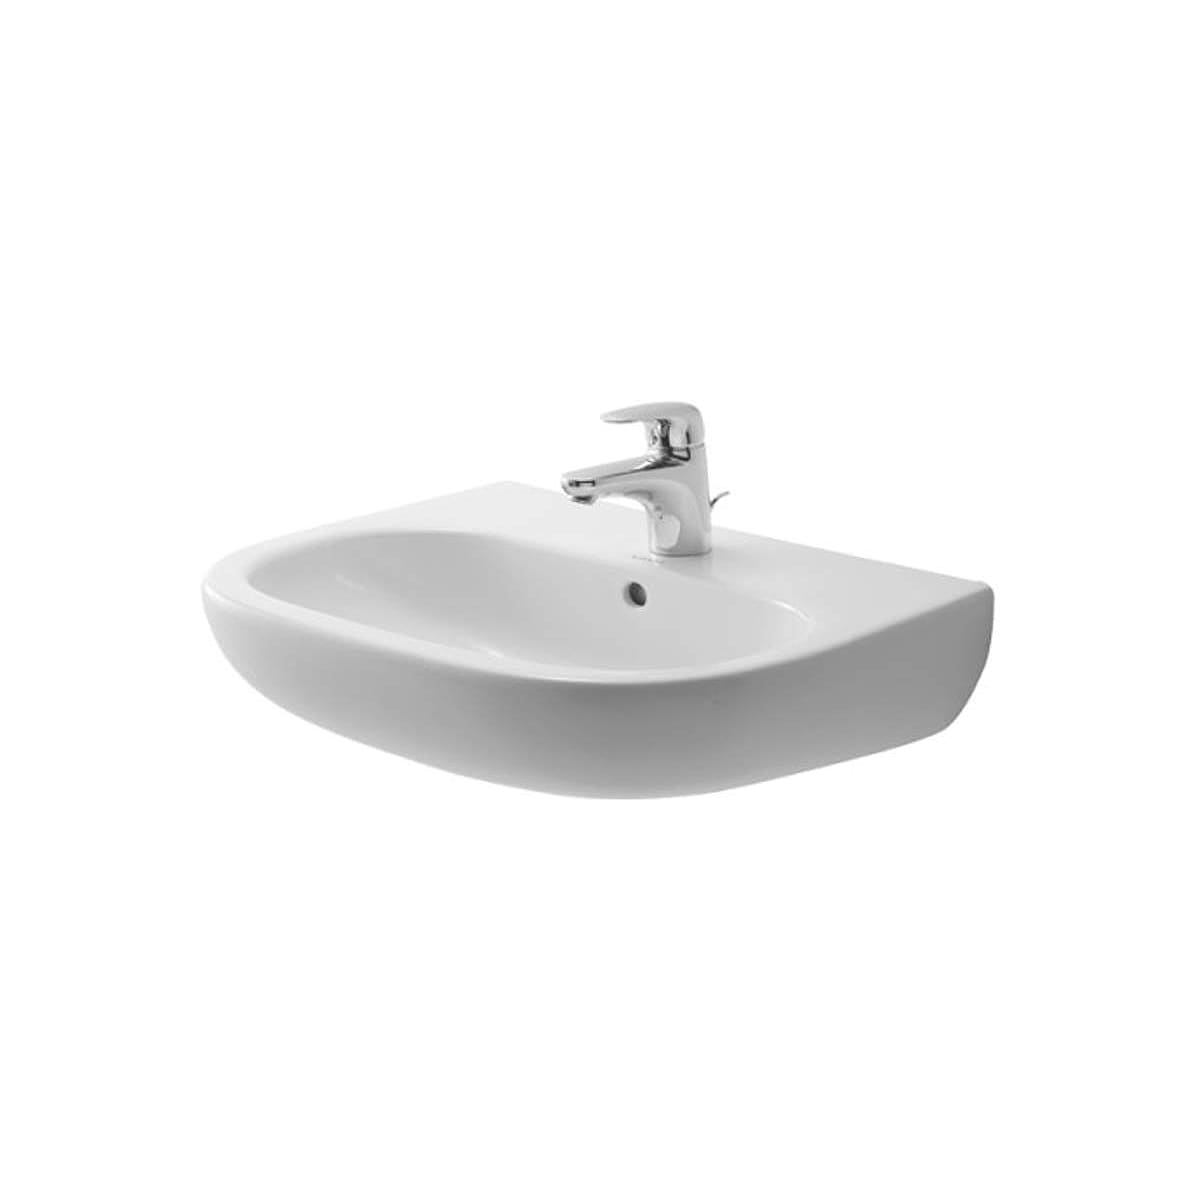 Duravit 23105500302 D Code 21 5 8 Ceramic Bathroom Sink For Wall Mounted Or Pedestal Installations With Widespread Faucet Holes And Overflow 23105500302 Snyder Diamond Kitchen Bath